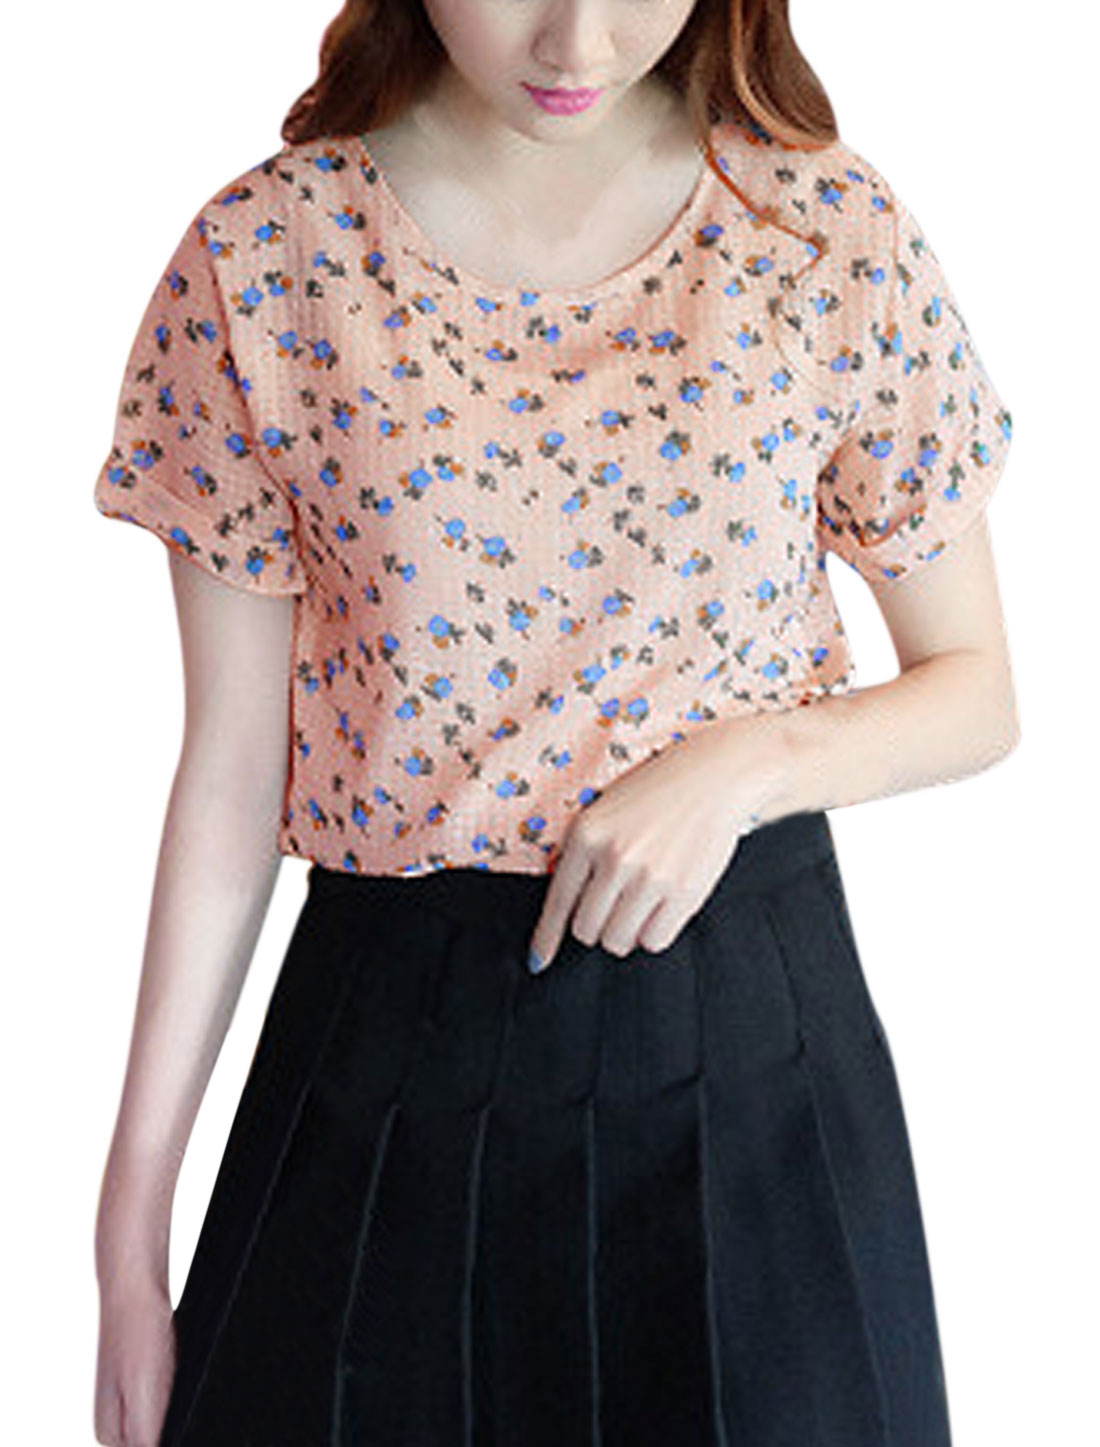 Woman Floral Prints Checks Round Neck Short Sleeves T-shirt Pale Pink XS